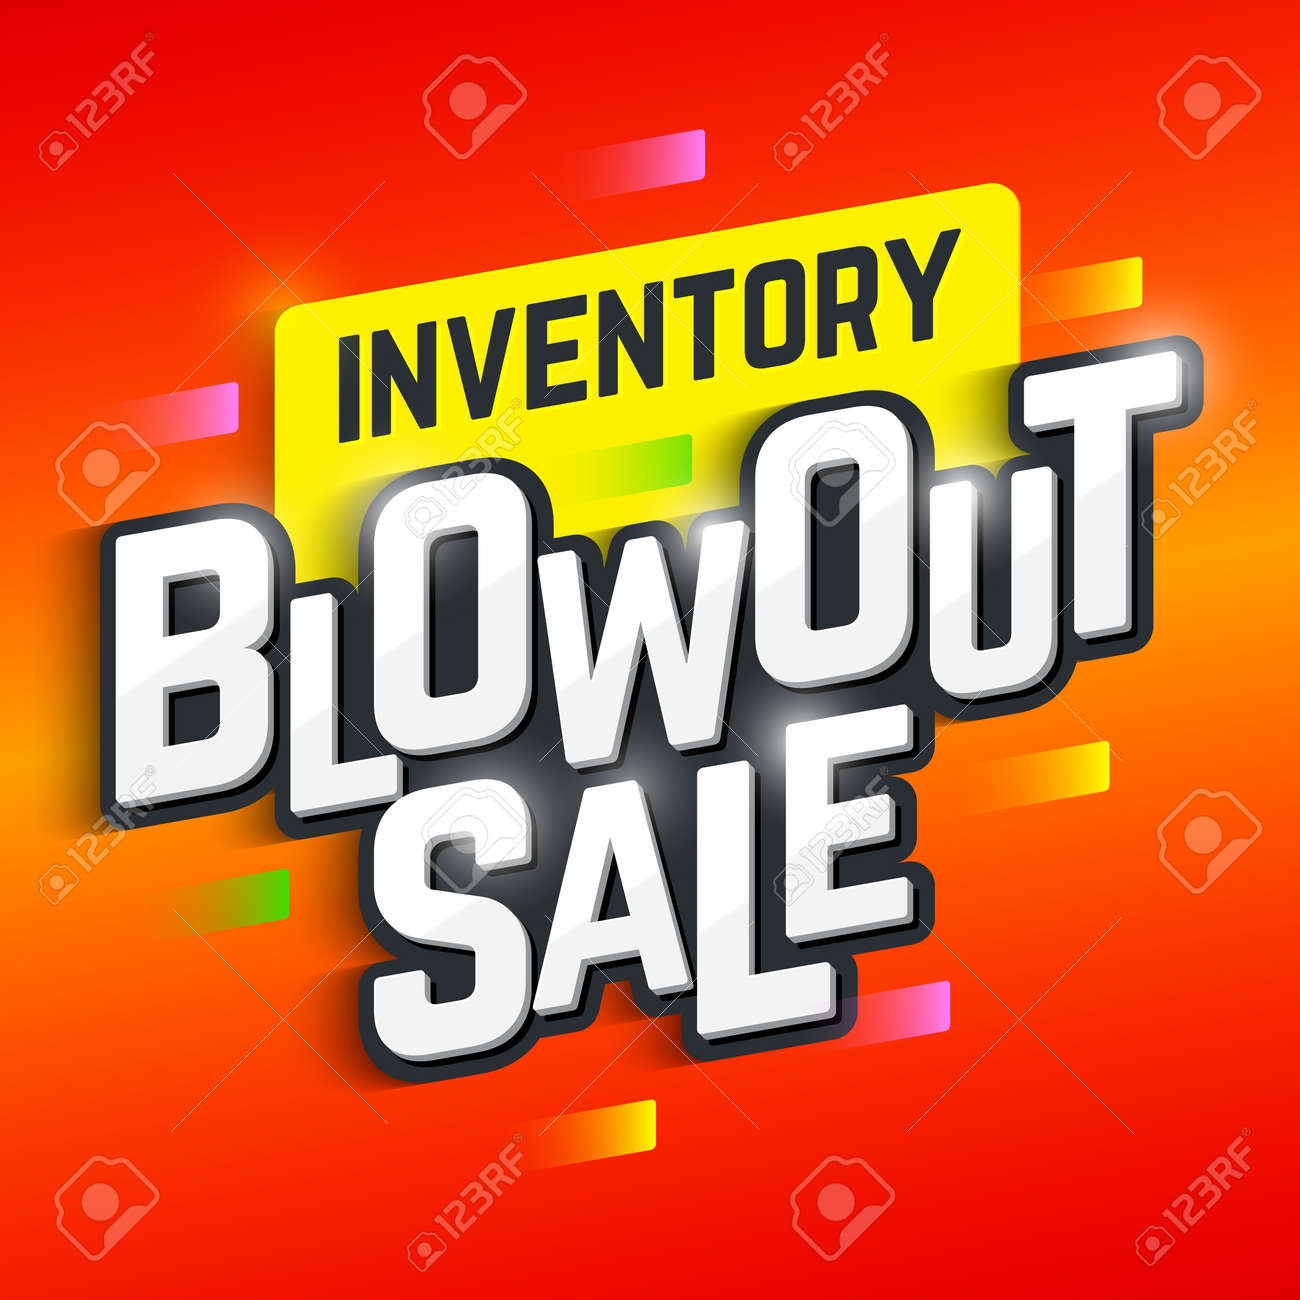 c8234342 Inventory Blowout Sale Banner Royalty Free Cliparts, Vectors, And ...